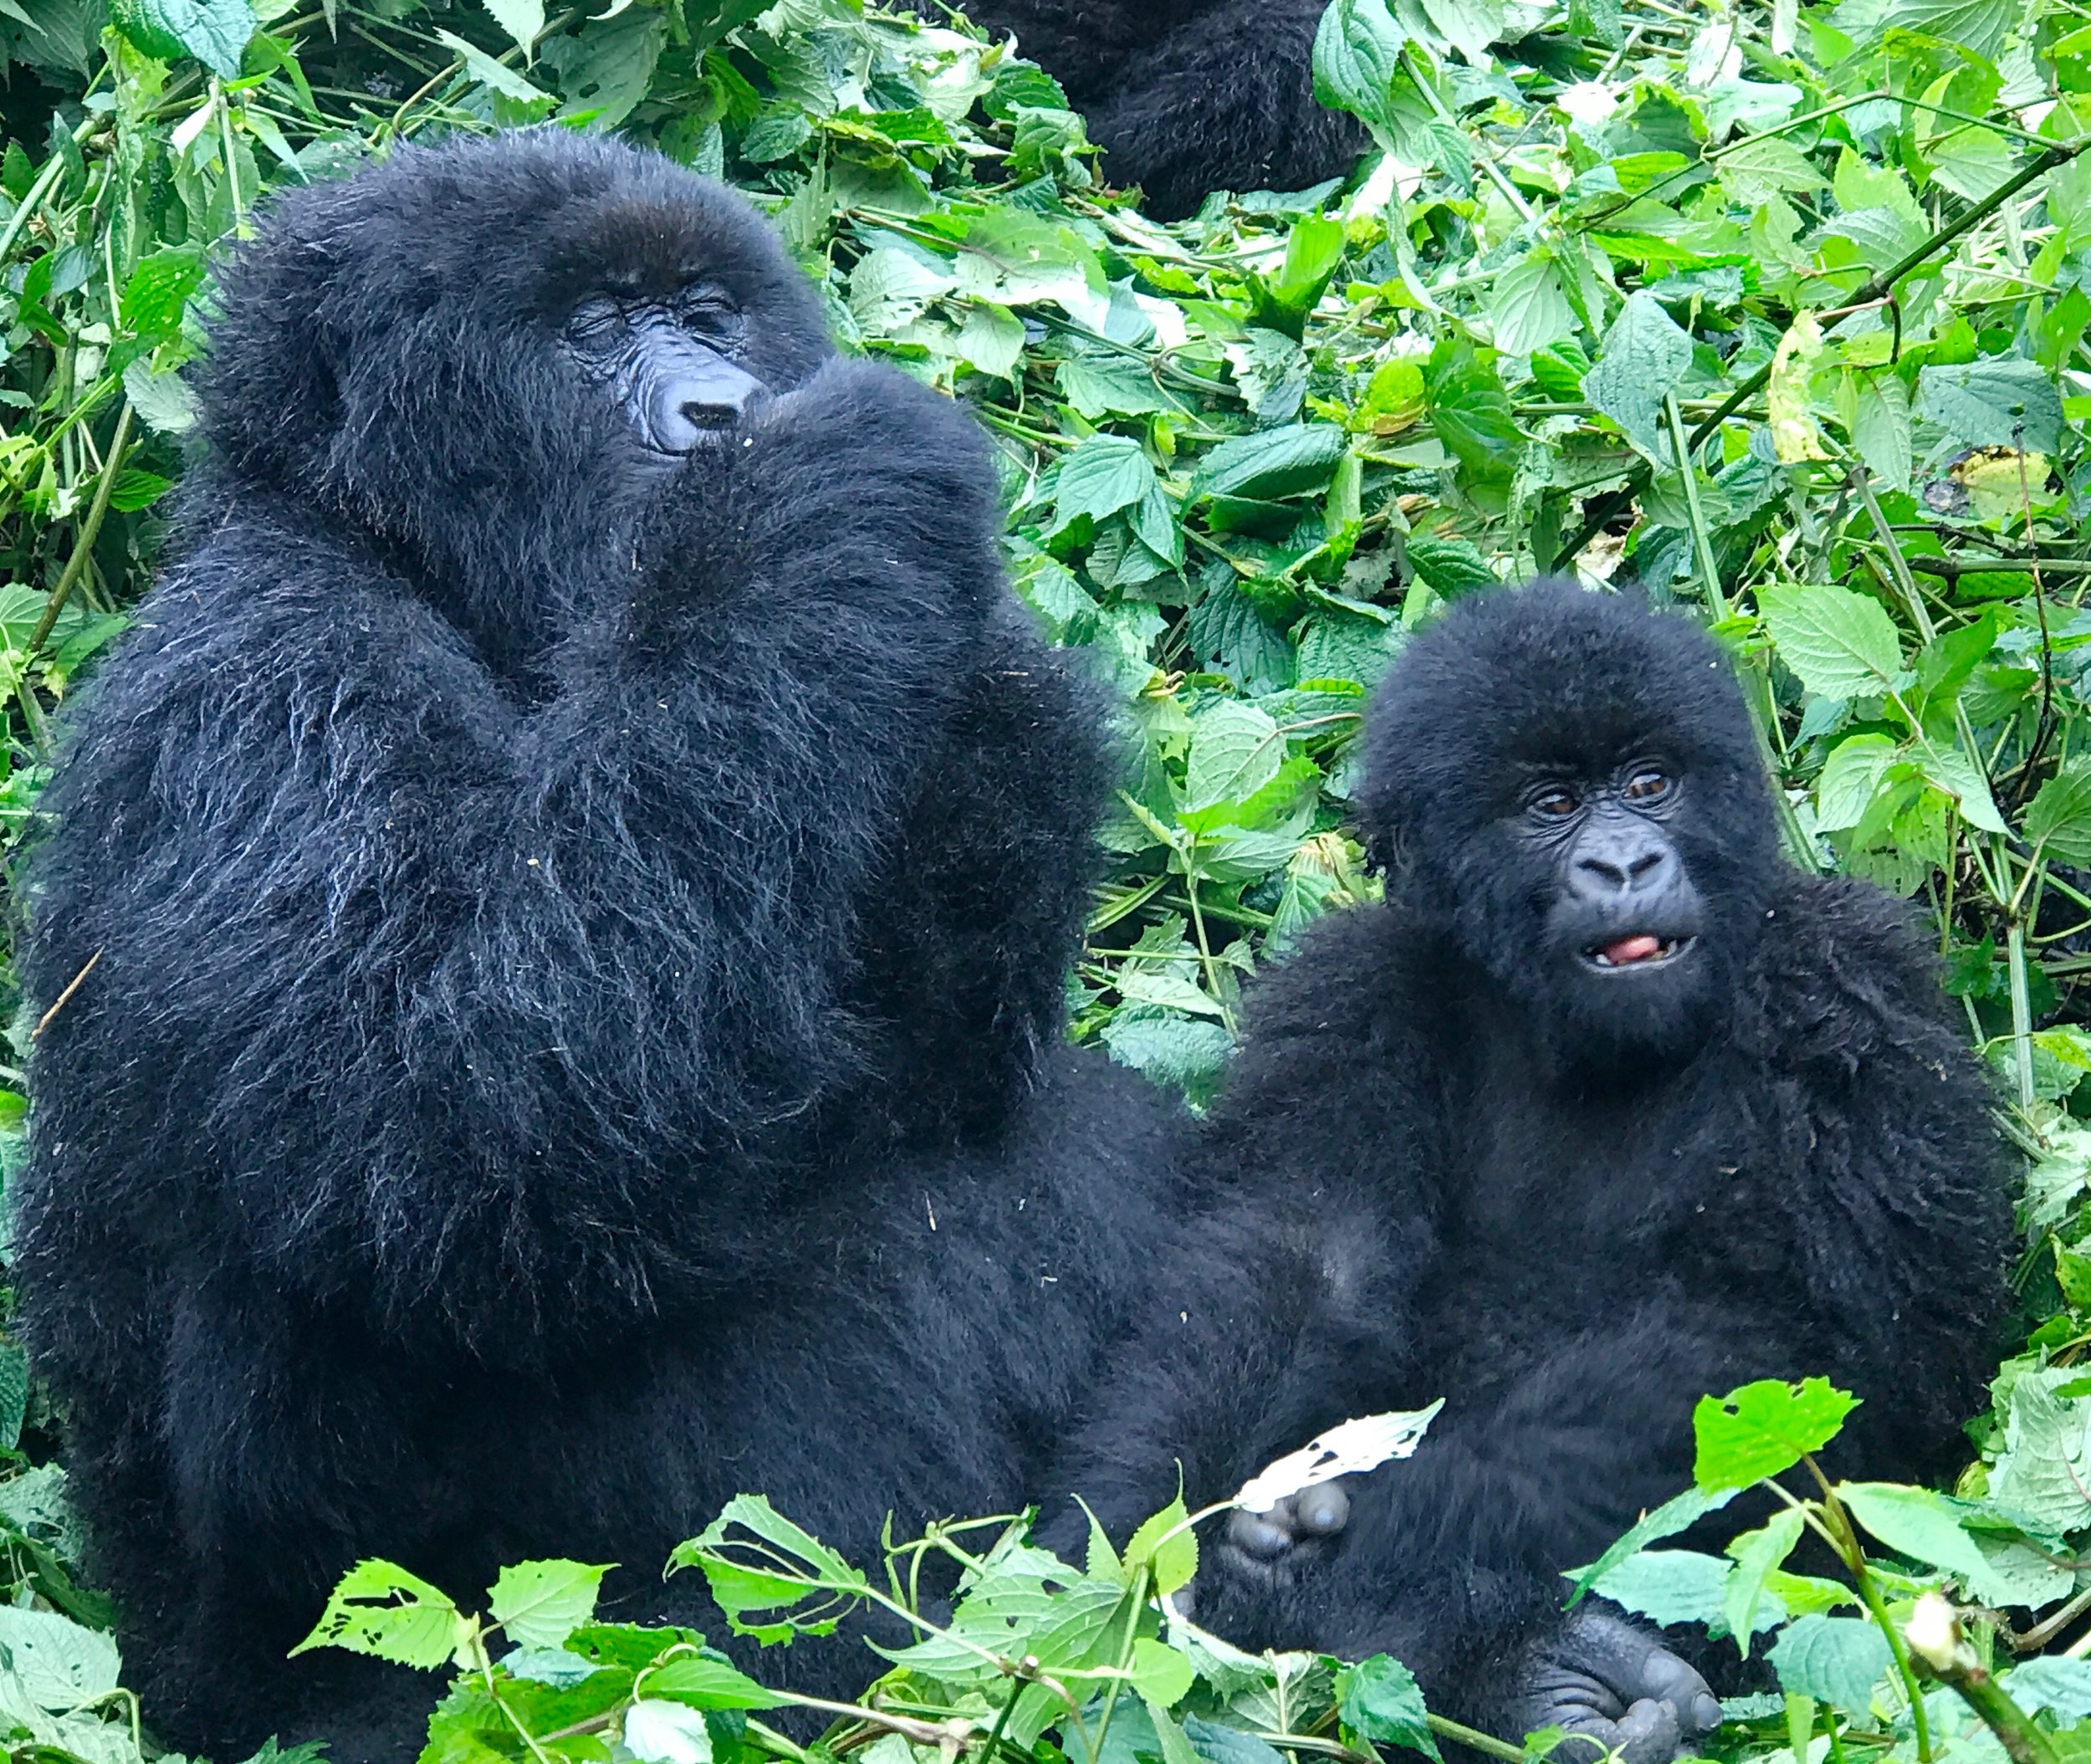 A momma gorilla and her baby, enjoying a beautiful afternoon in the jungle.